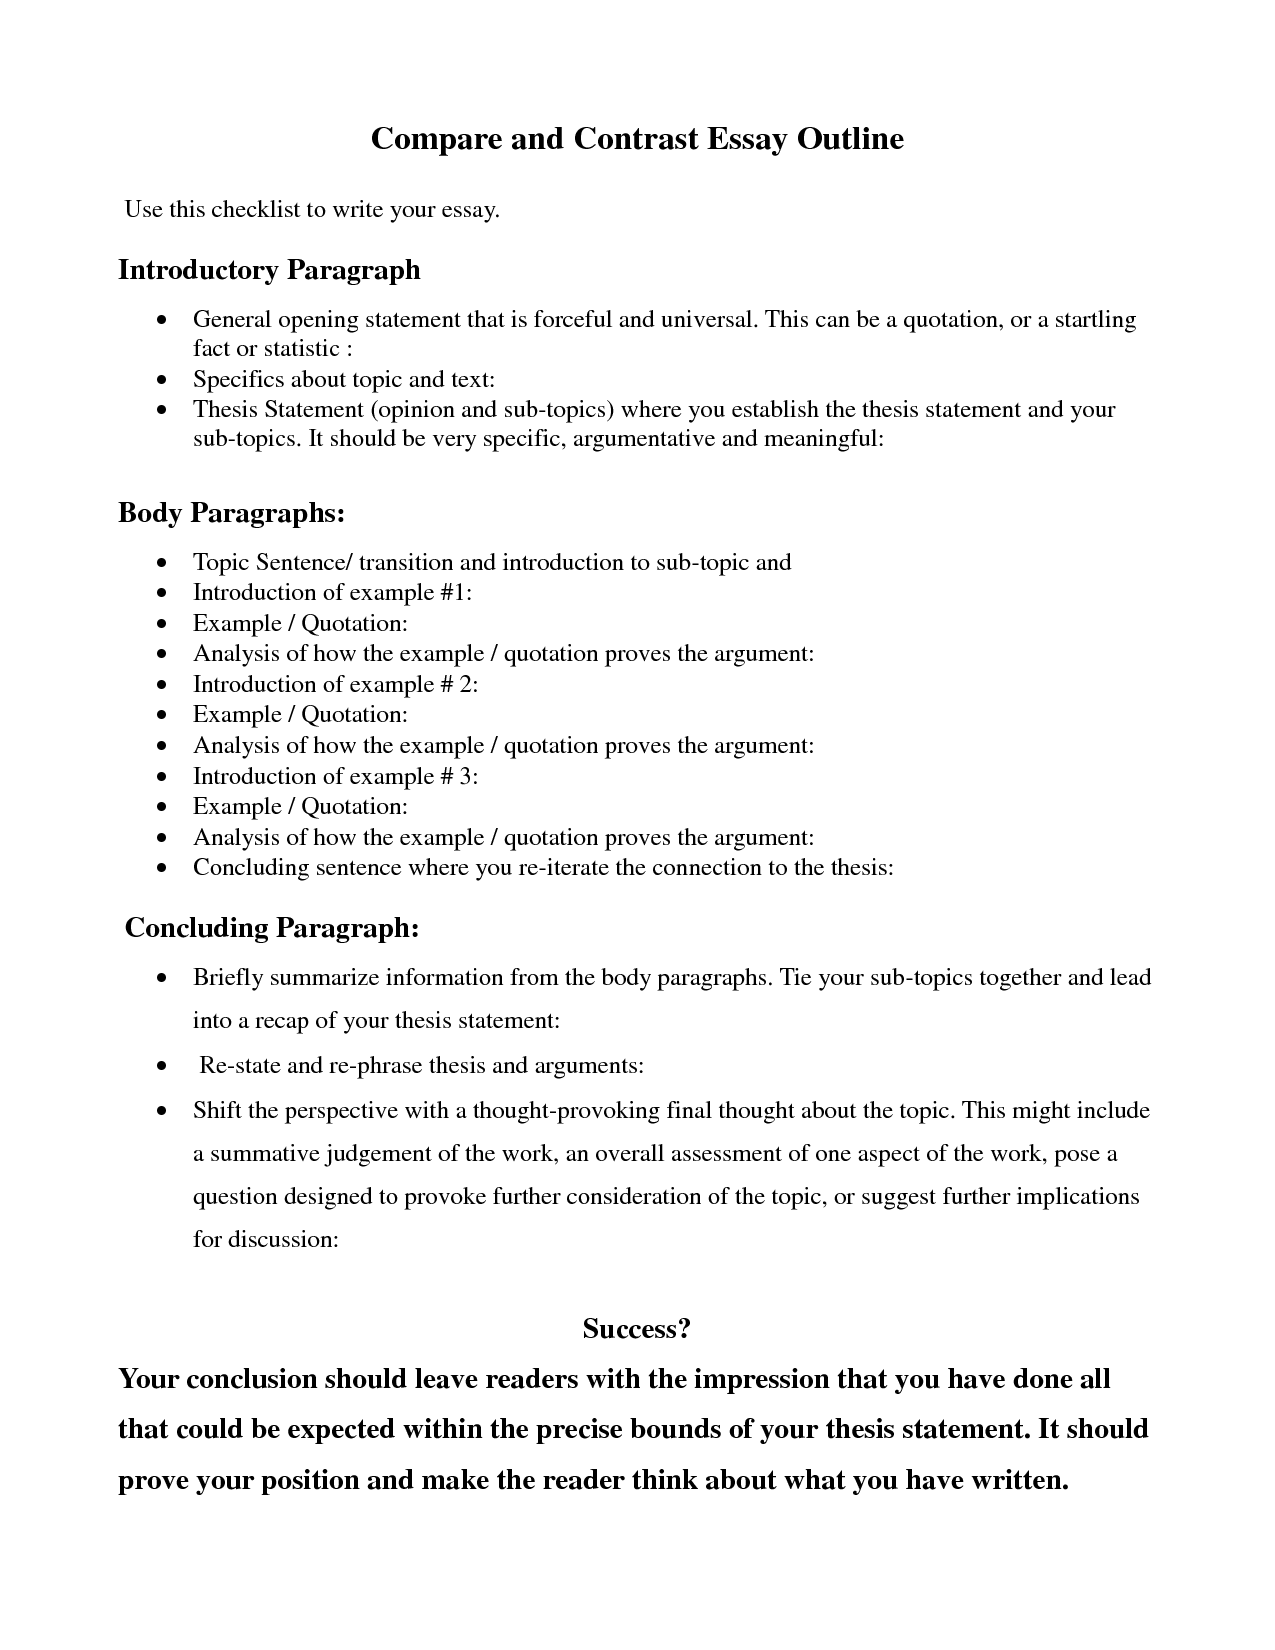 Essay With Thesis Statement Example Comparecontrast Essay Outline  Google Search Thesis Statement For Process Essay also Topics Of Essays For High School Students Comparecontrast Essay Outline  Google Search  Education  Thesis  High School Dropouts Essay